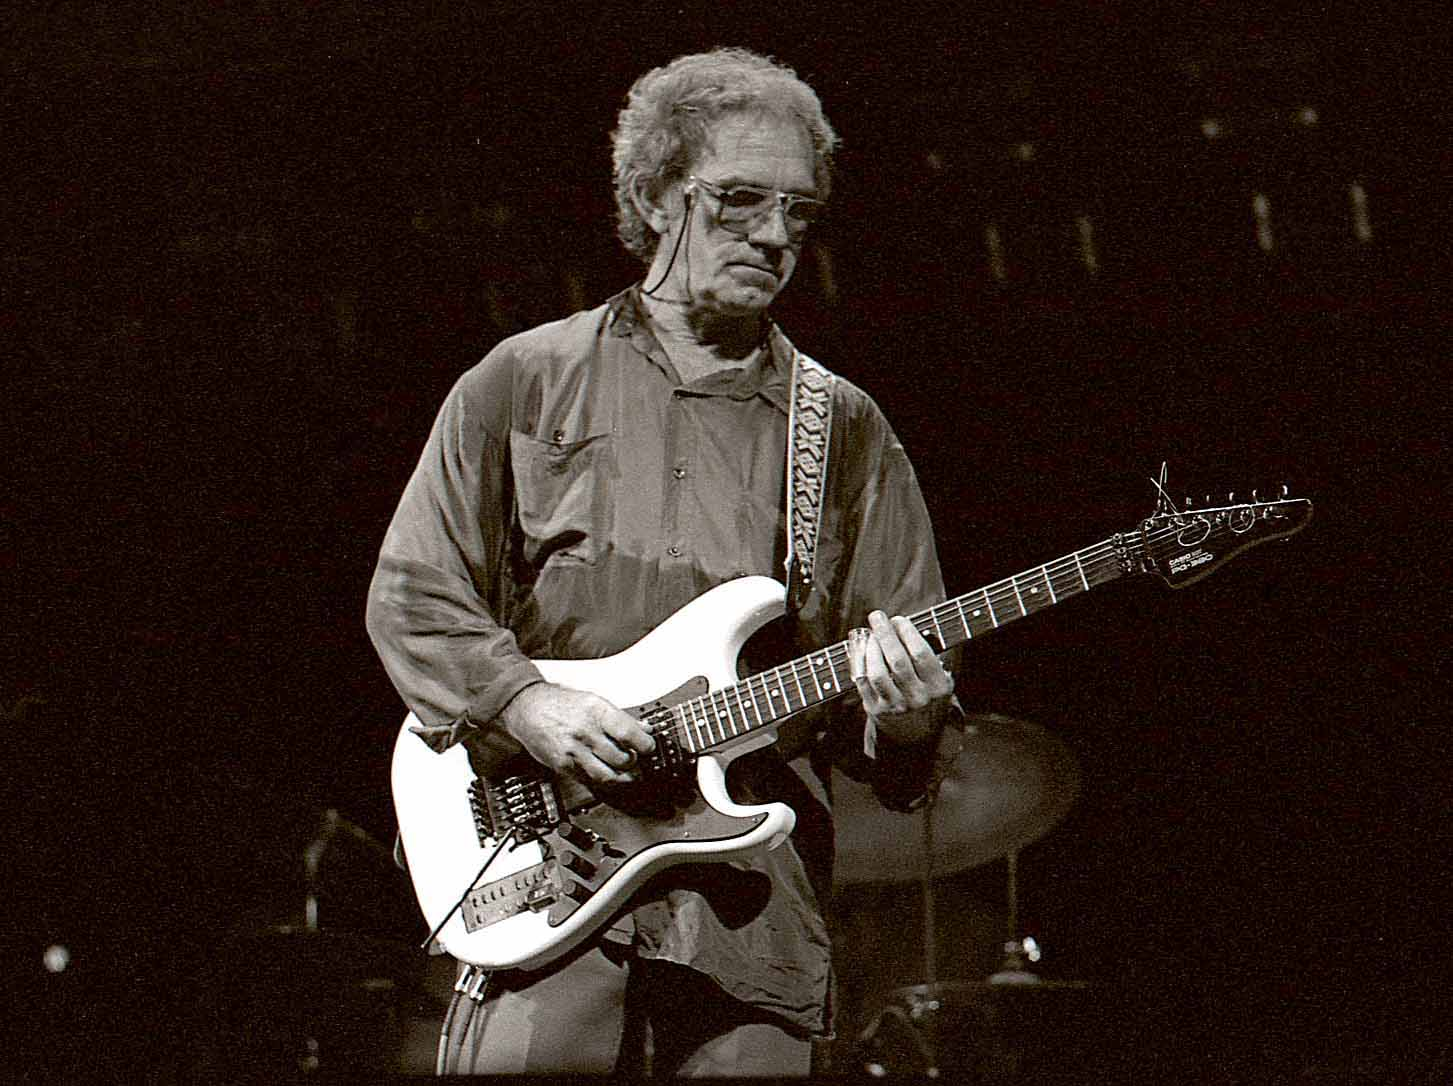 Oldie of The Week: 'After Midnight', J. J. Cale (1966)